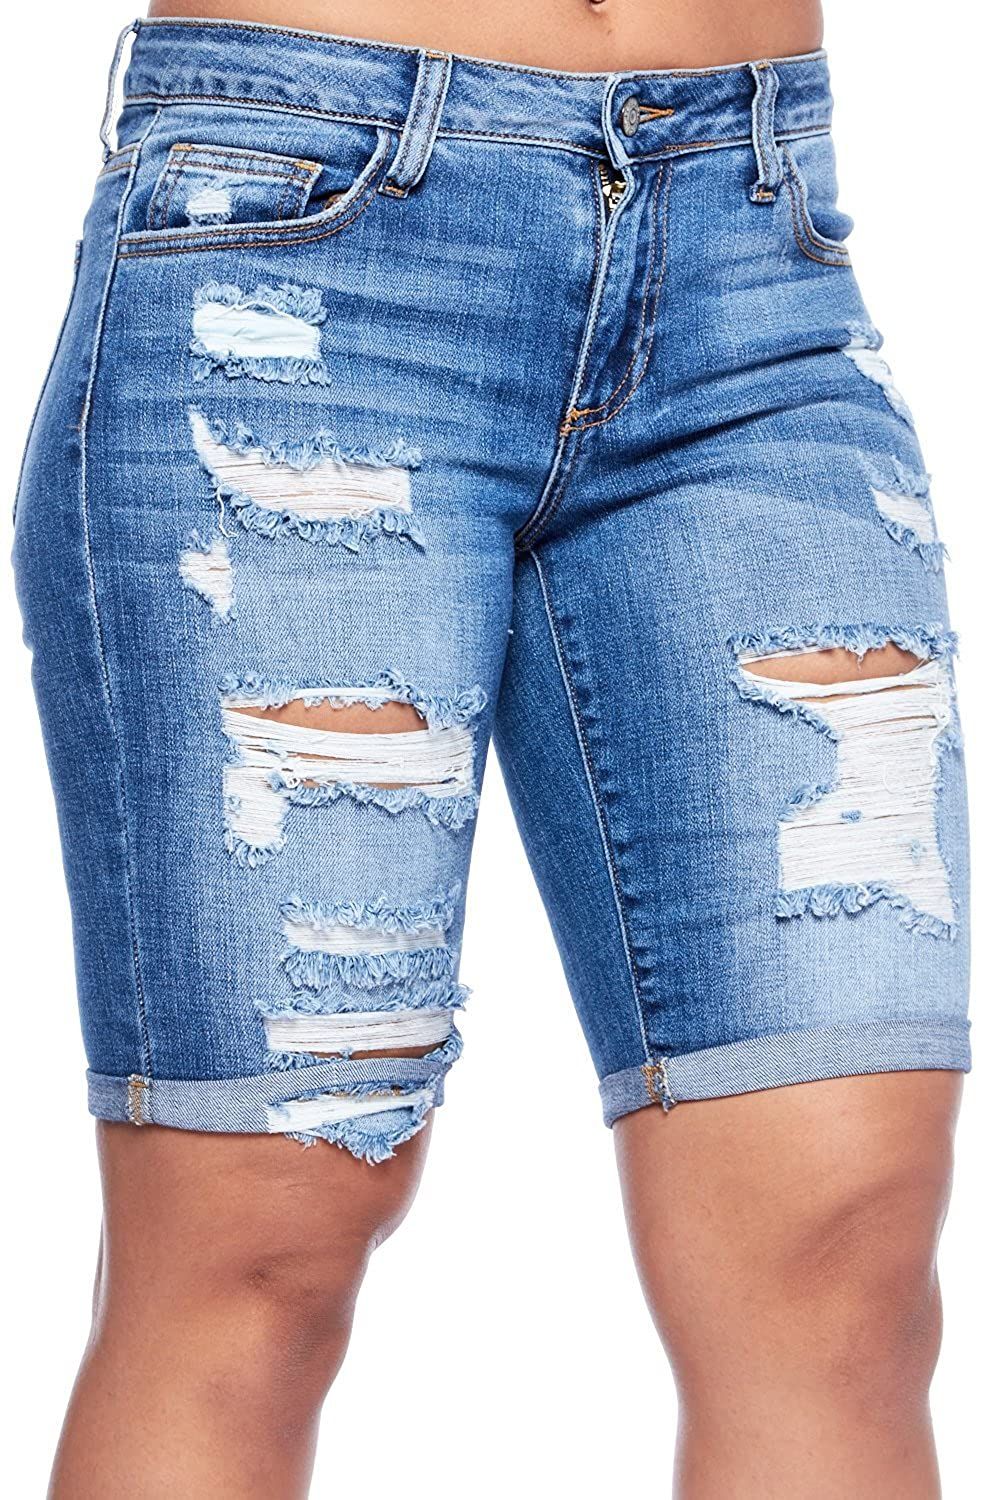 e353c0f1d91ba6 new Womens Mid Rise Destroyed Pocket Rolled Up Denim Shorts WV64847 ...